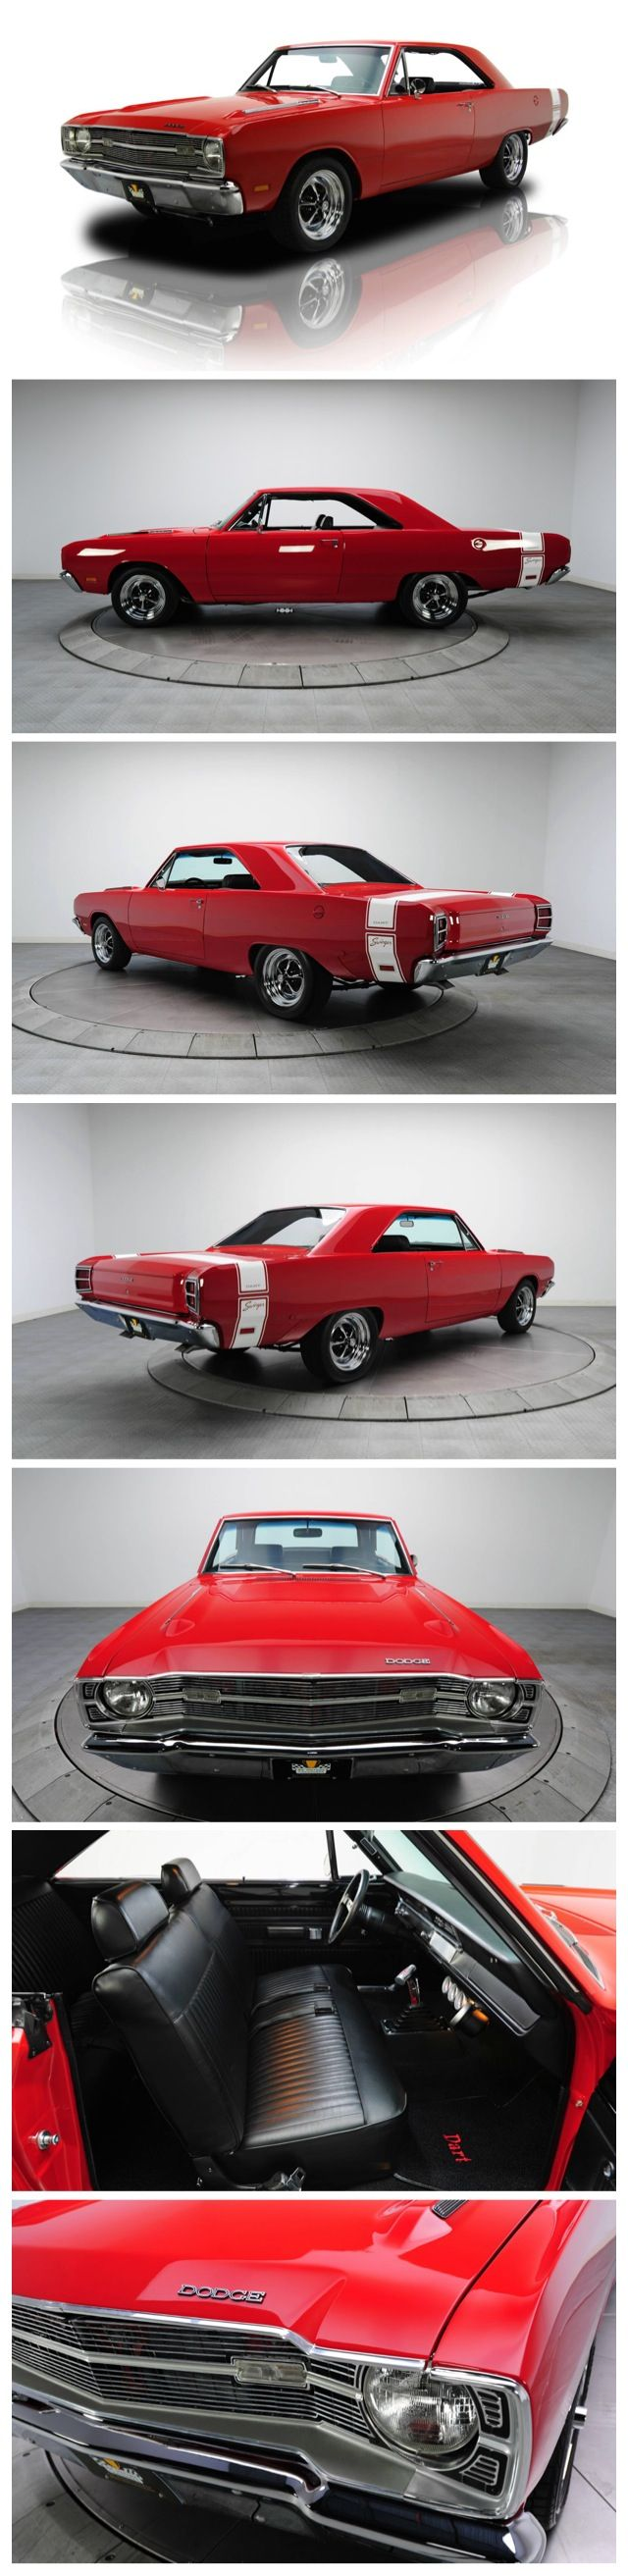 1969 Dodge Dart Swinger Refurbished